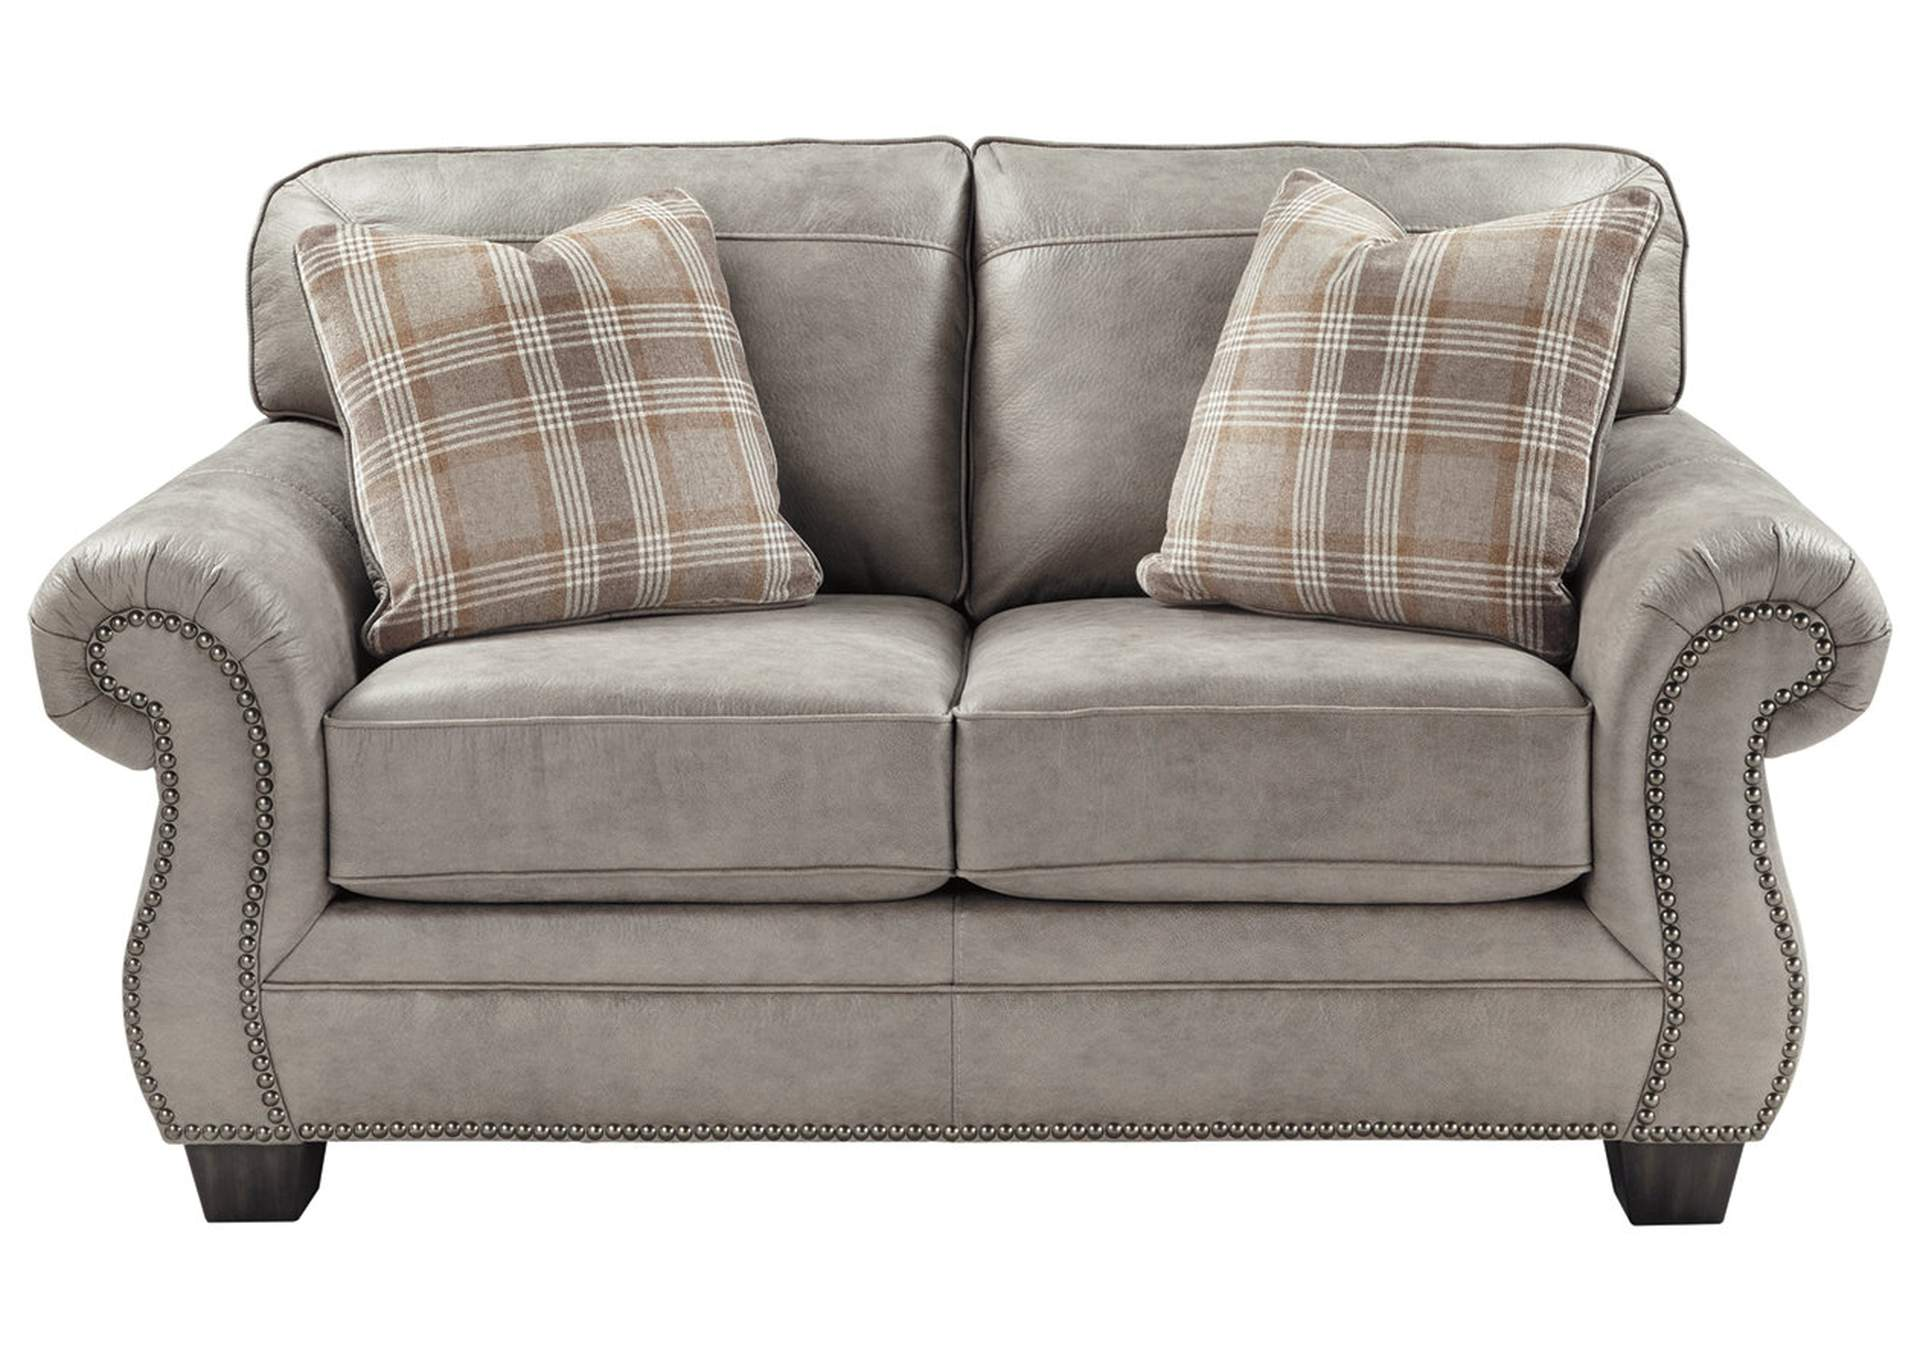 Olsberg Loveseat,Signature Design By Ashley